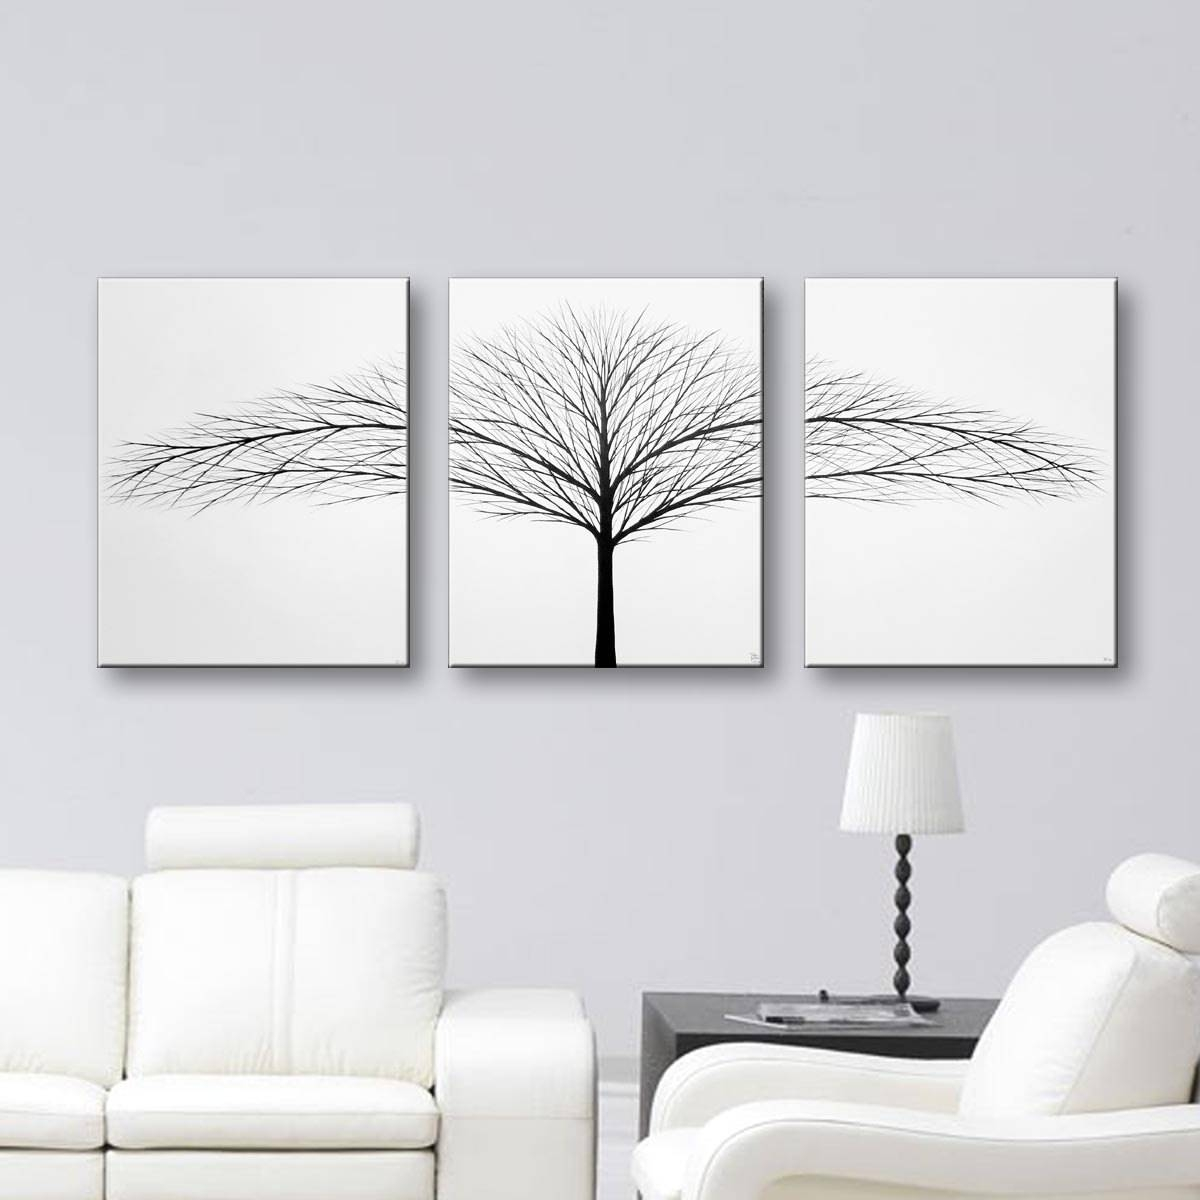 Bedroom Wall Decor 3 Piece Wall Art Canvas Art Minimalist Inside Newest Large White Wall Art (View 1 of 20)